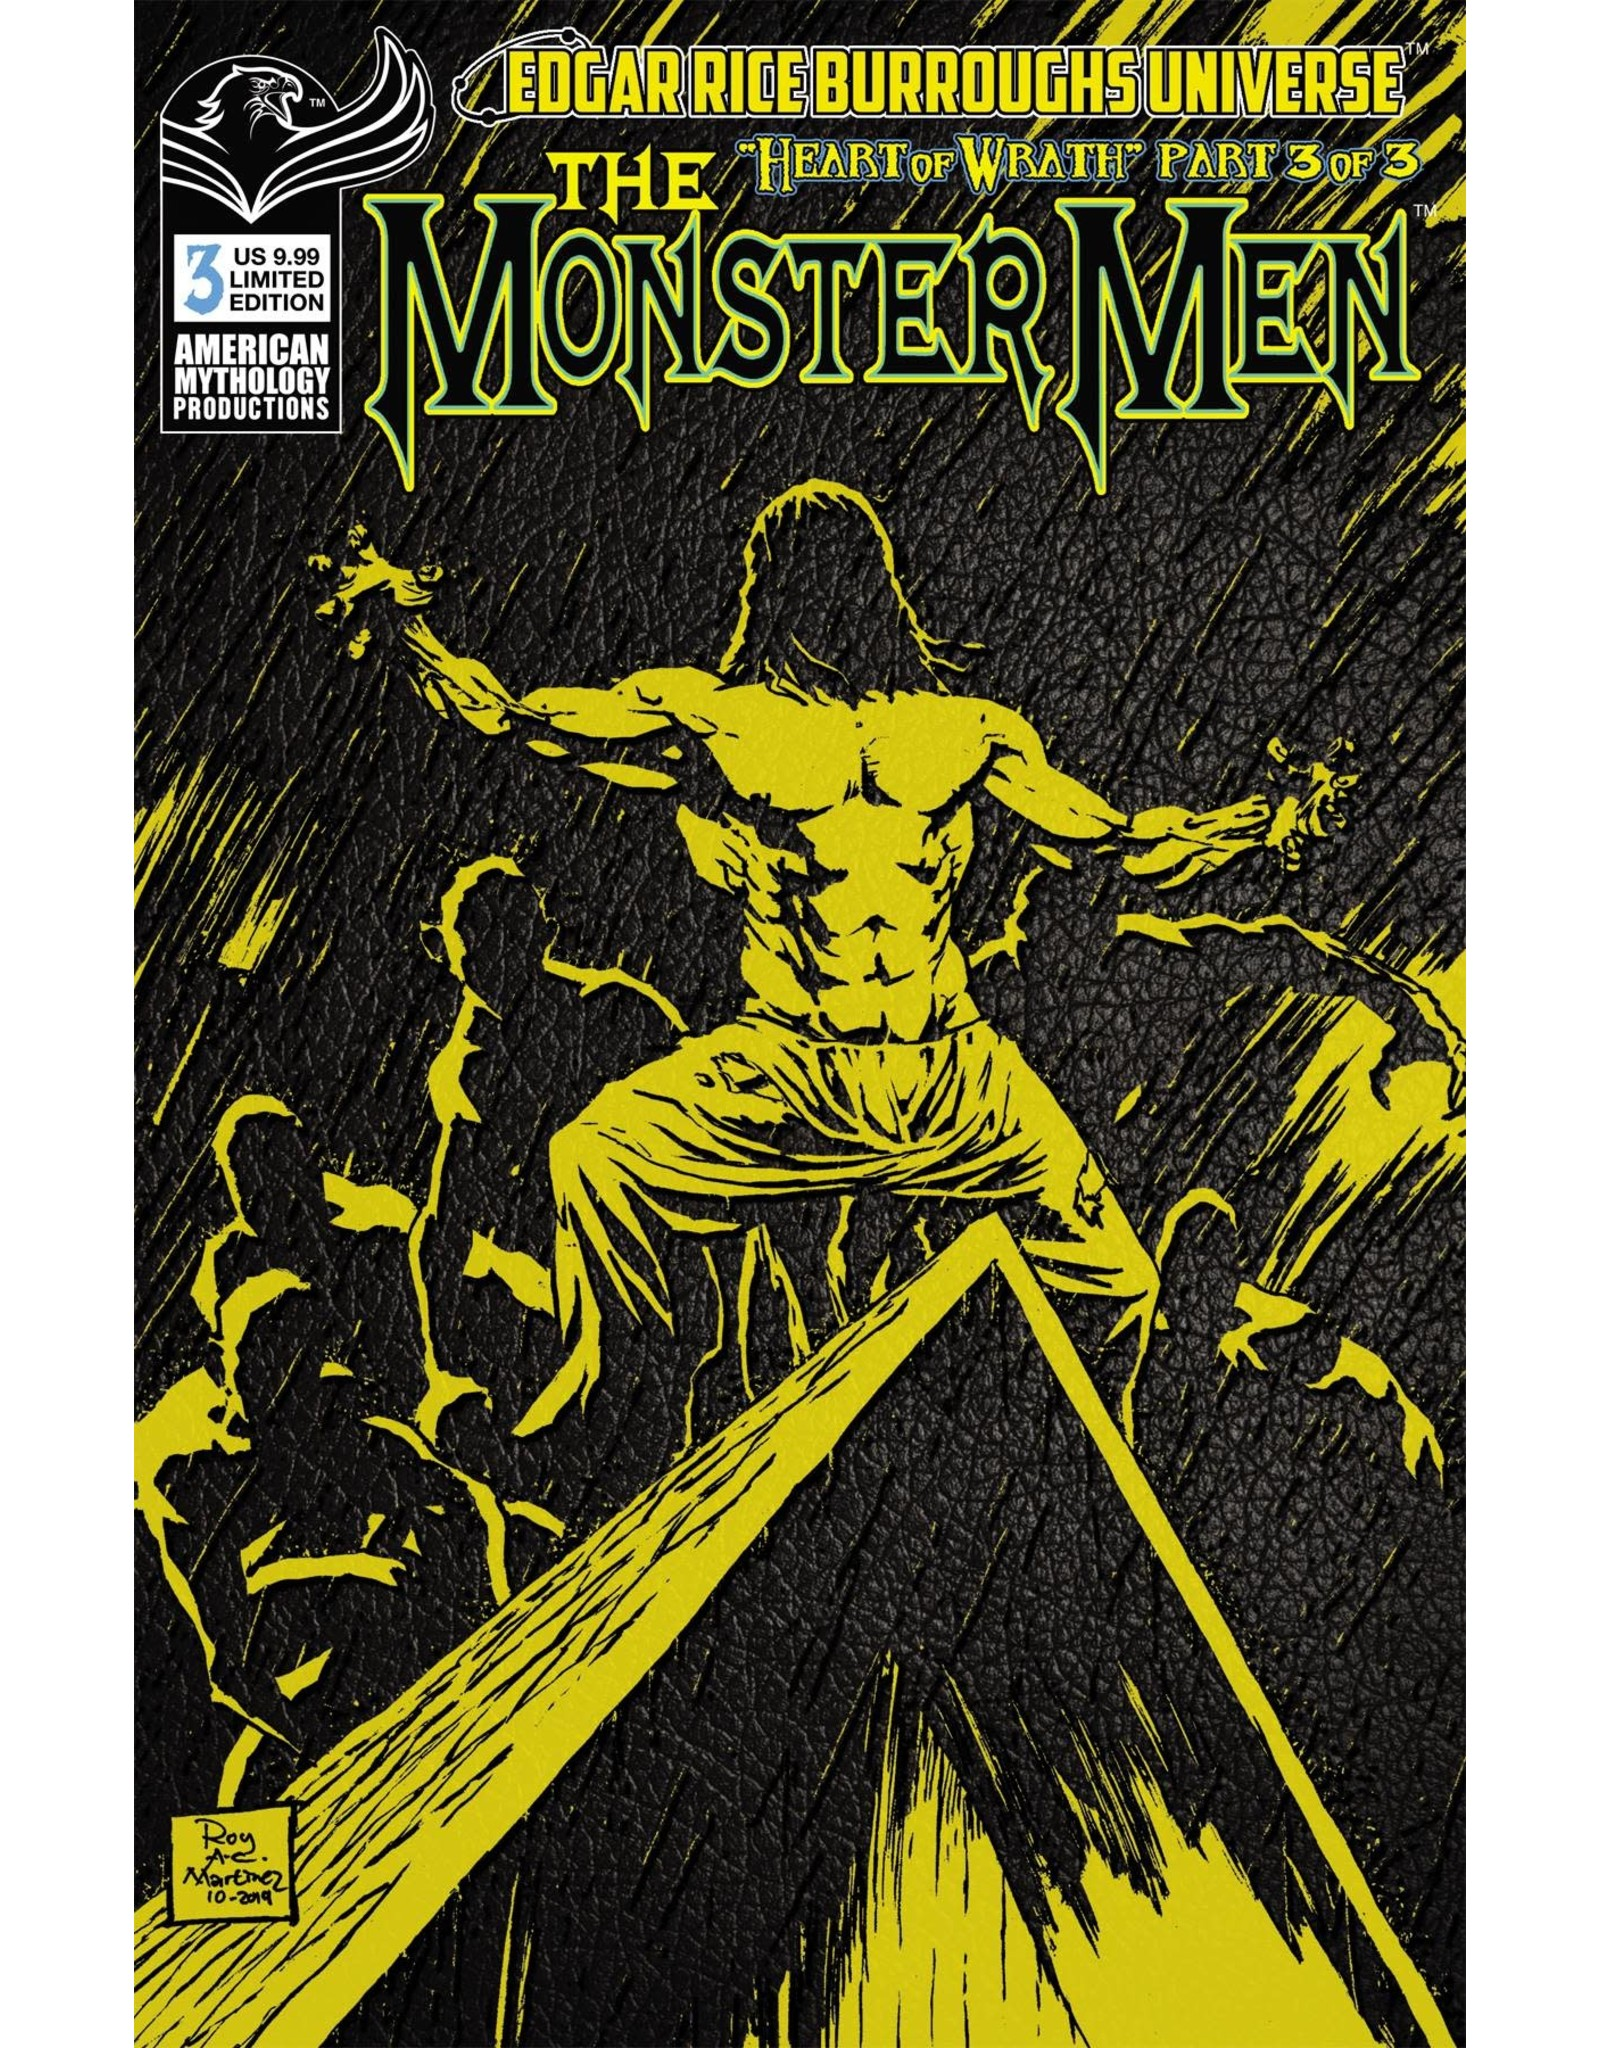 AMERICAN MYTHOLOGY PRODUCTIONS MONSTER MEN HEART OF WRATH #3 CVR B PULP LTD ED